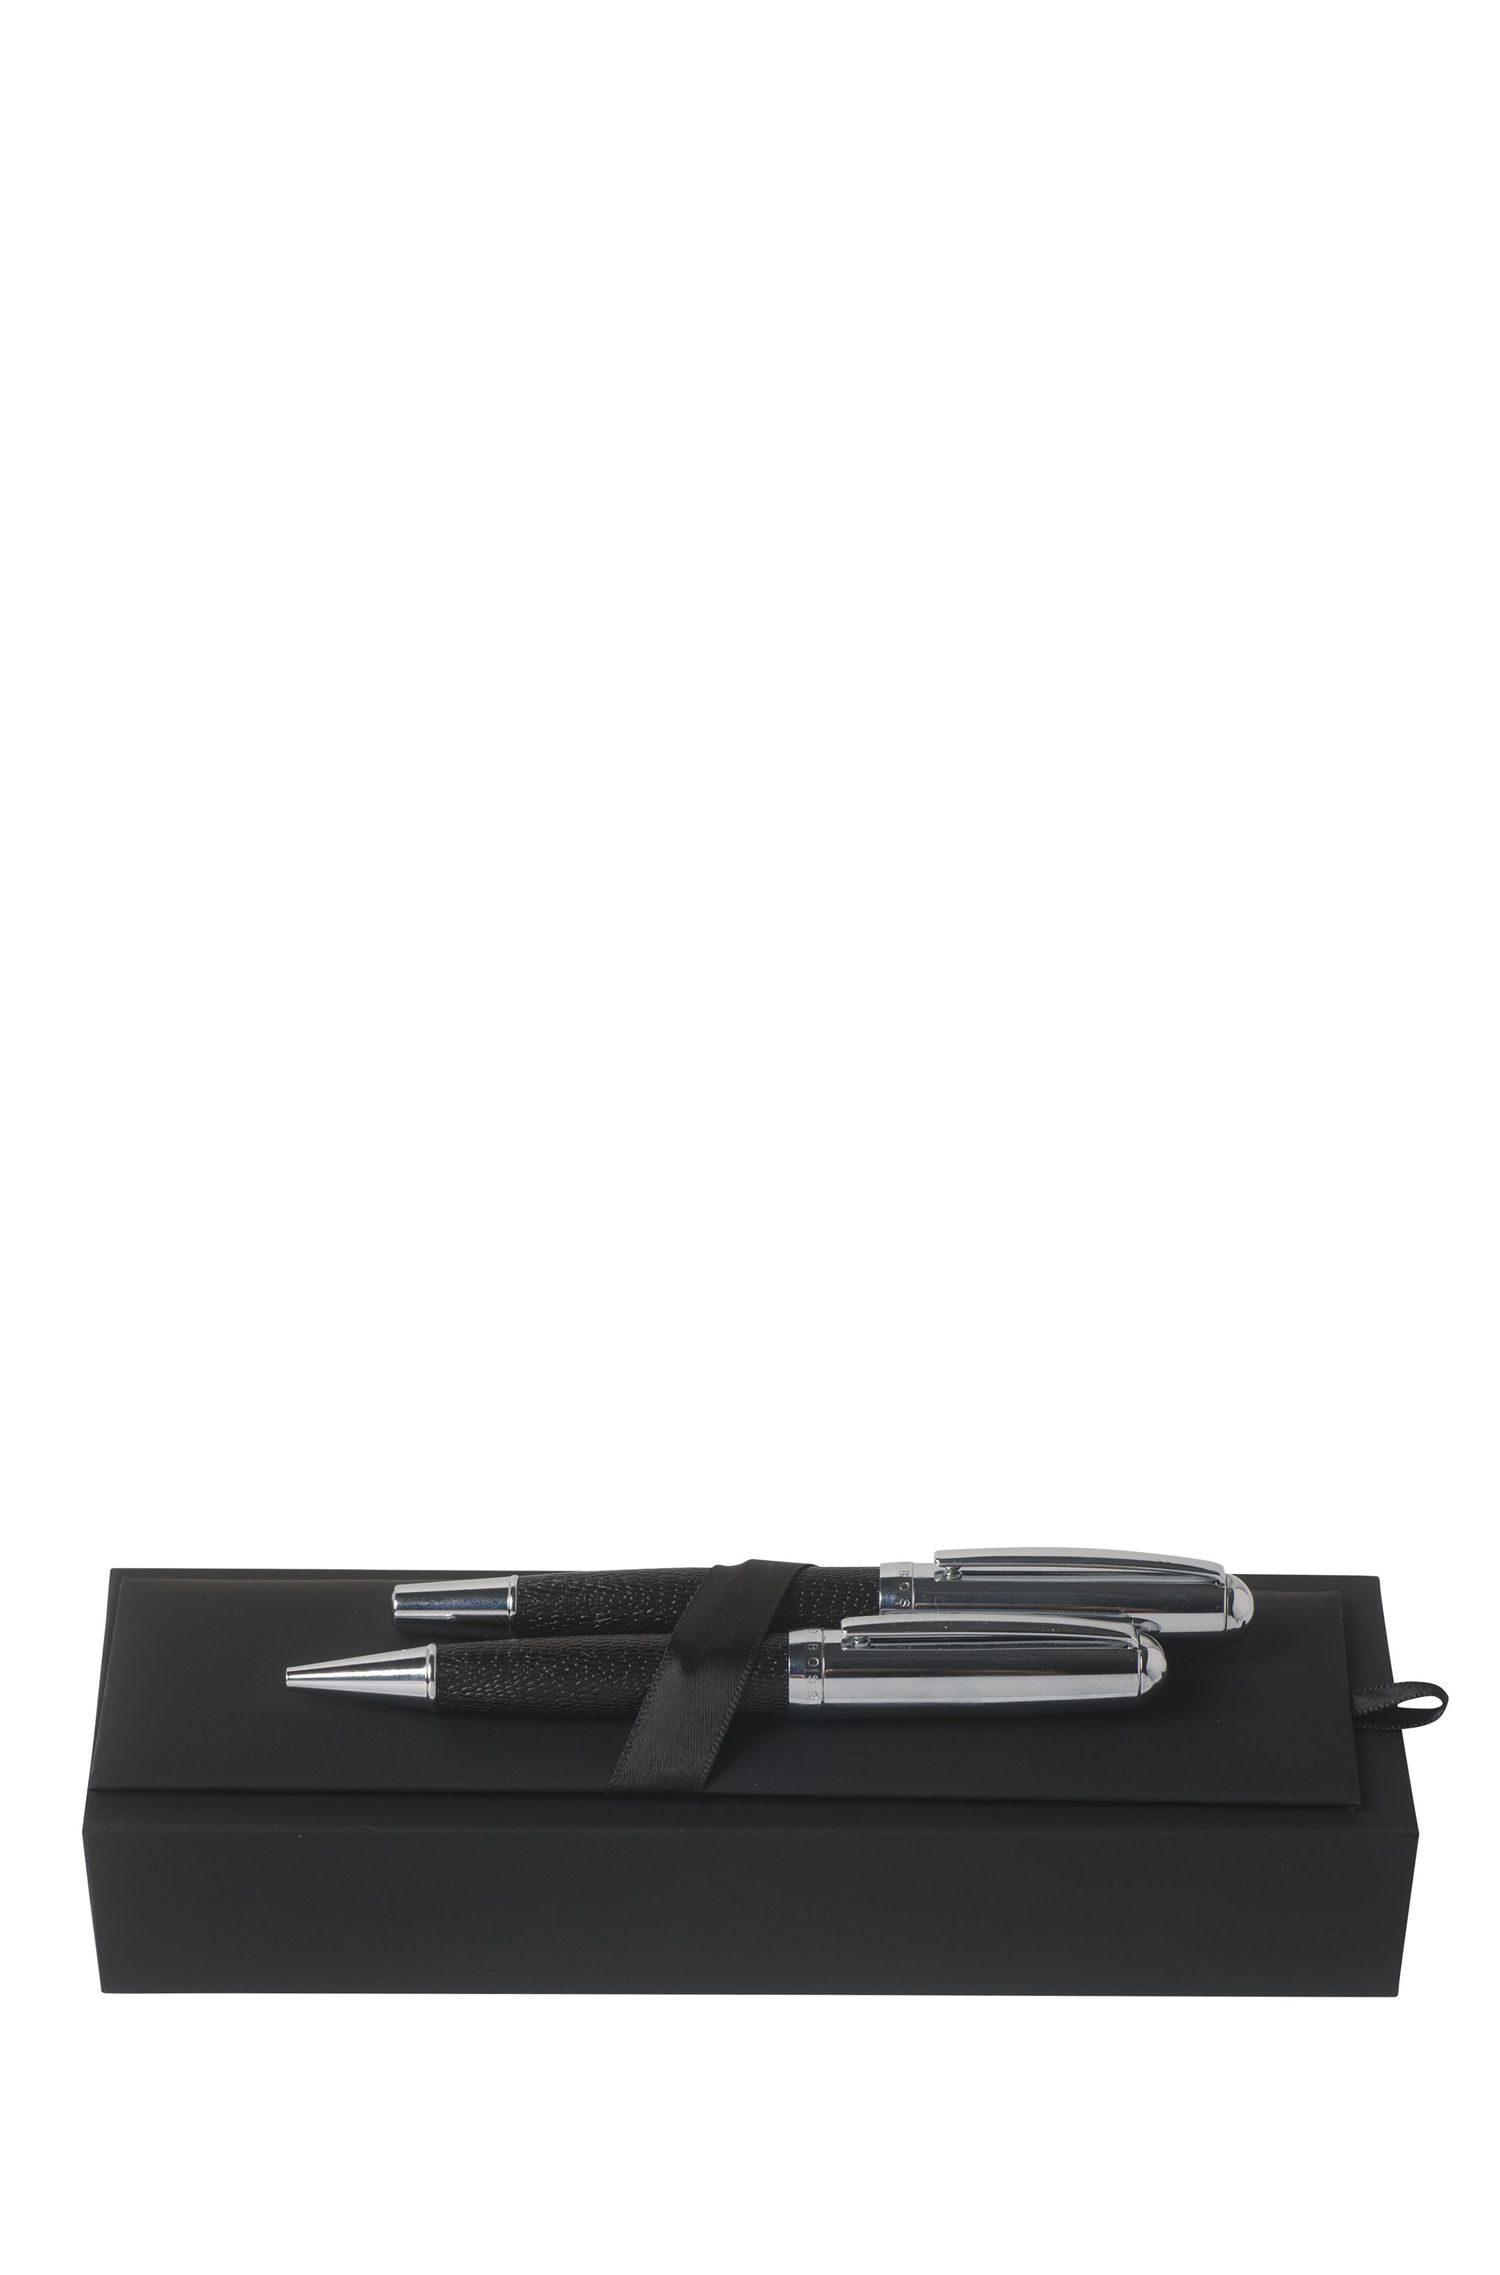 Gift set with ballpoint and rollerball pens